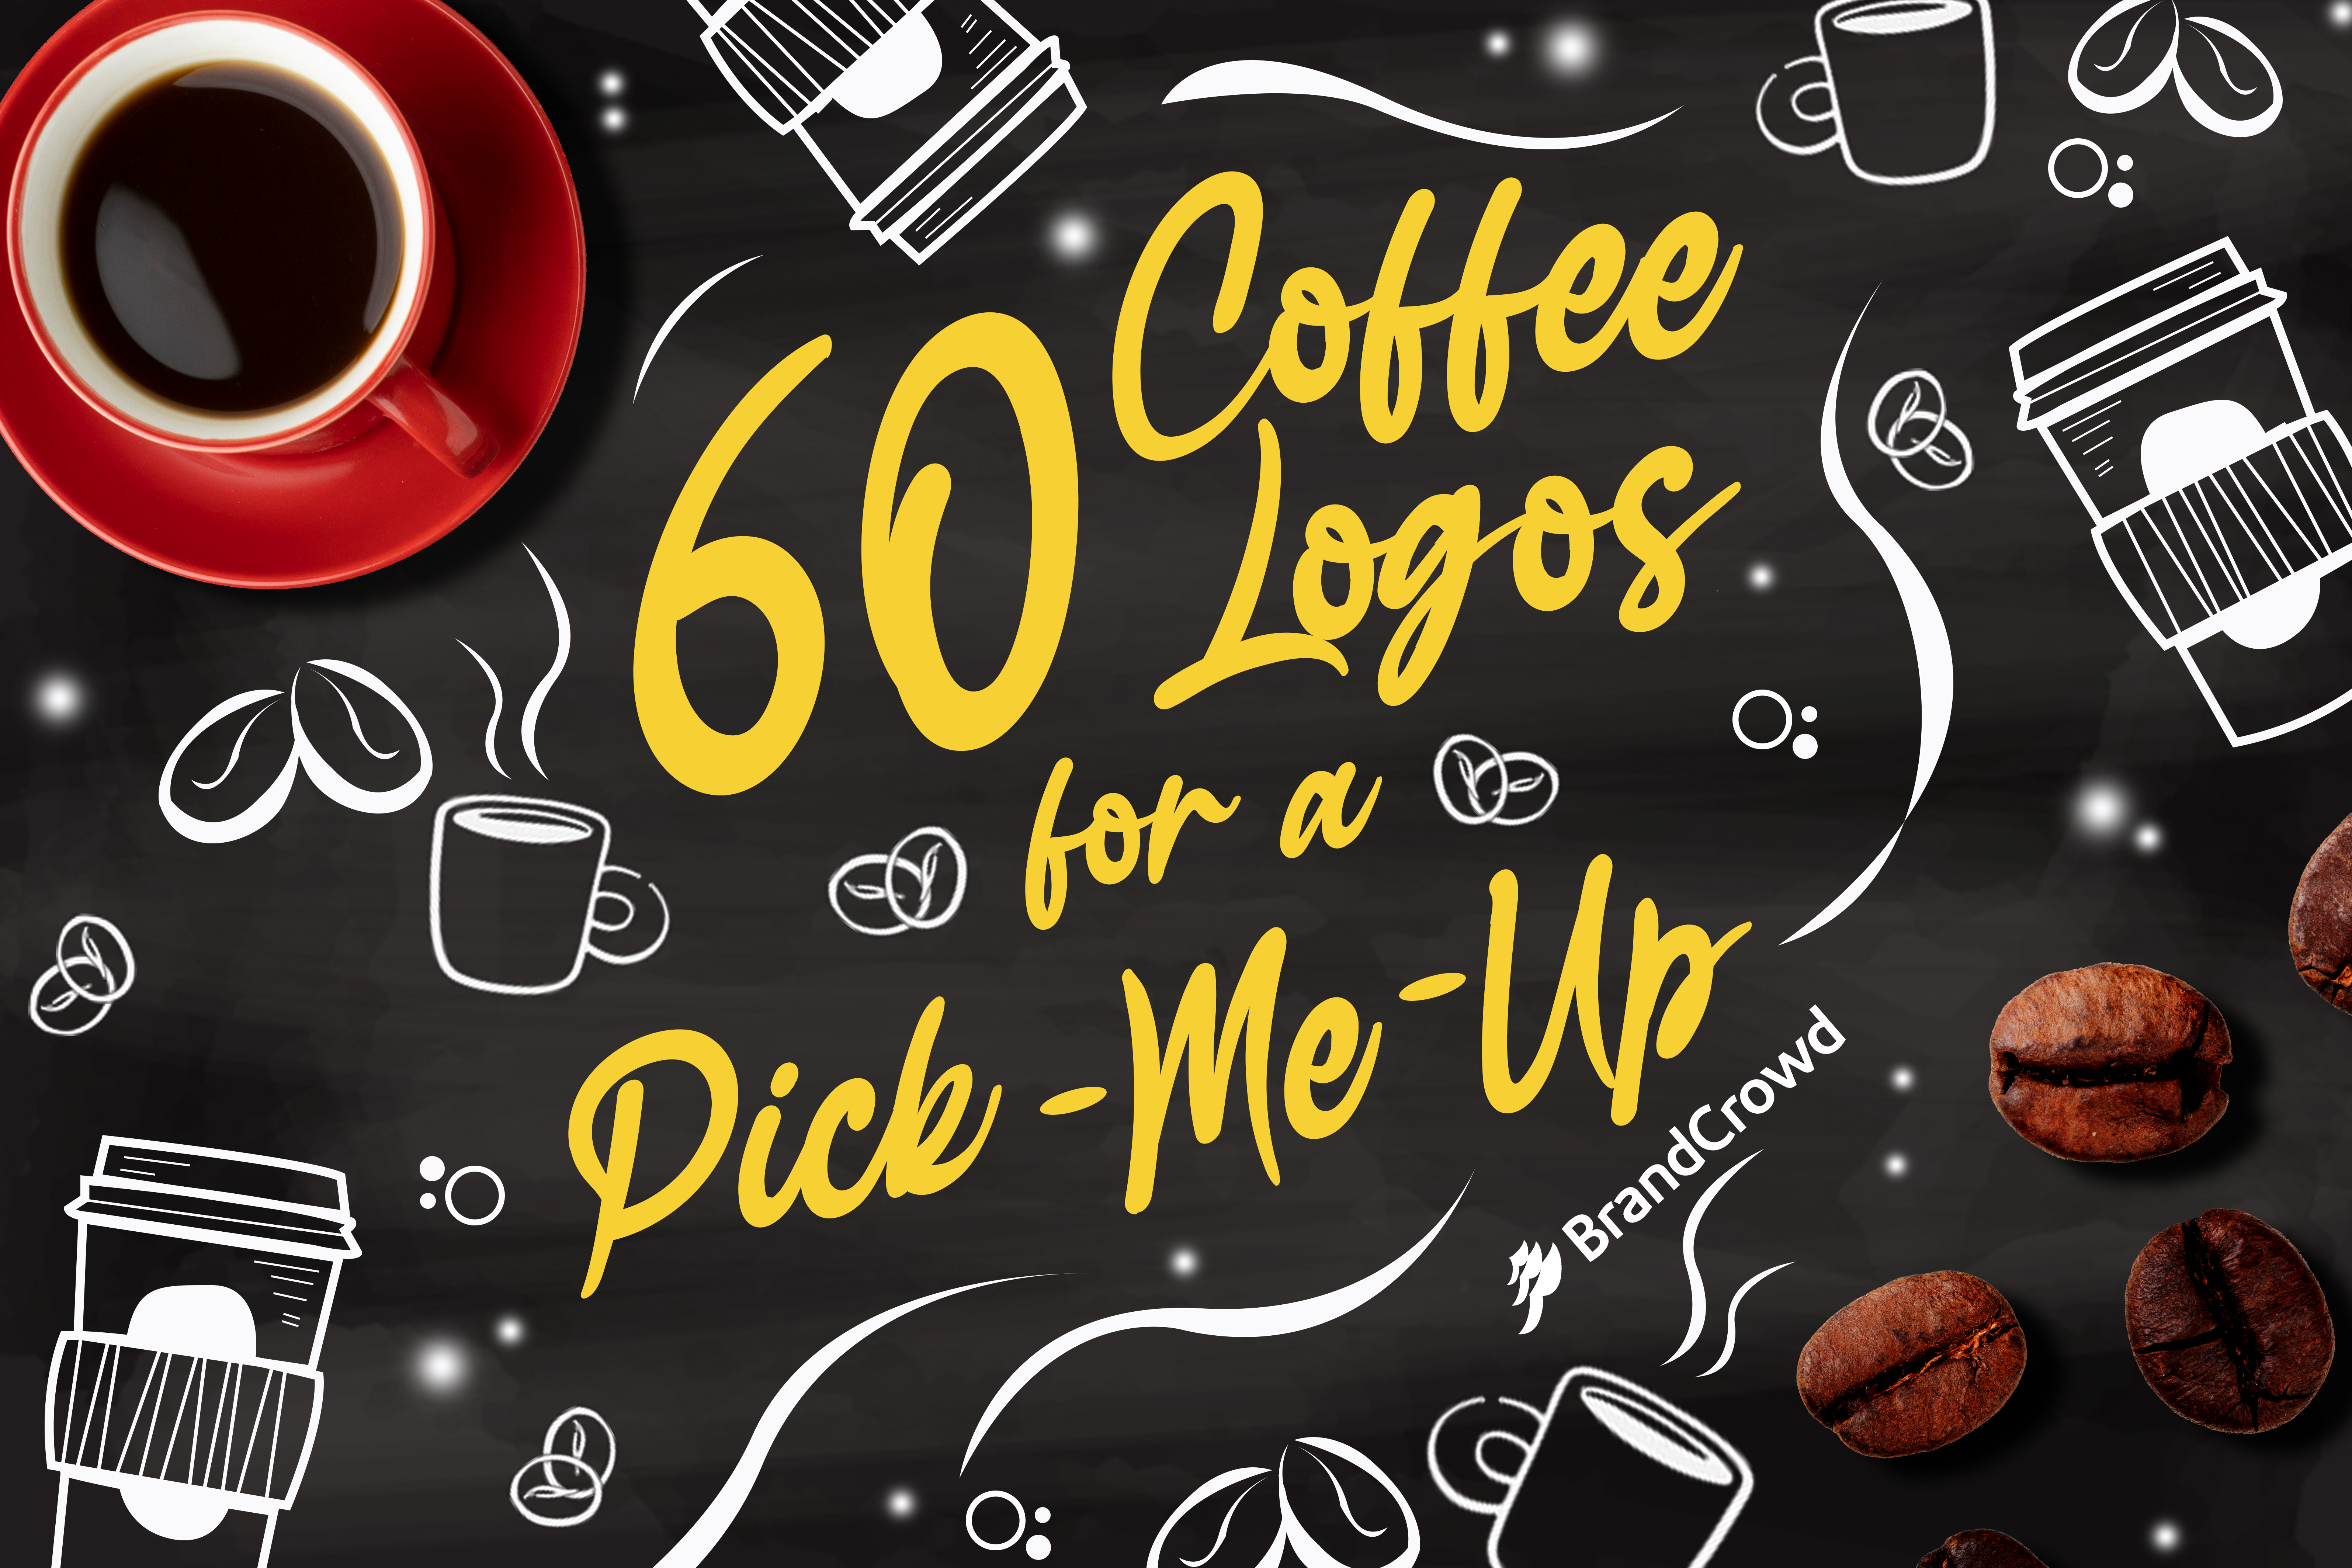 the-header-features-an-illustration-of-a-coffee-cup-with-a-background-of-a-cafe-chalkboard-wwith-the-blog-title-written-on-it